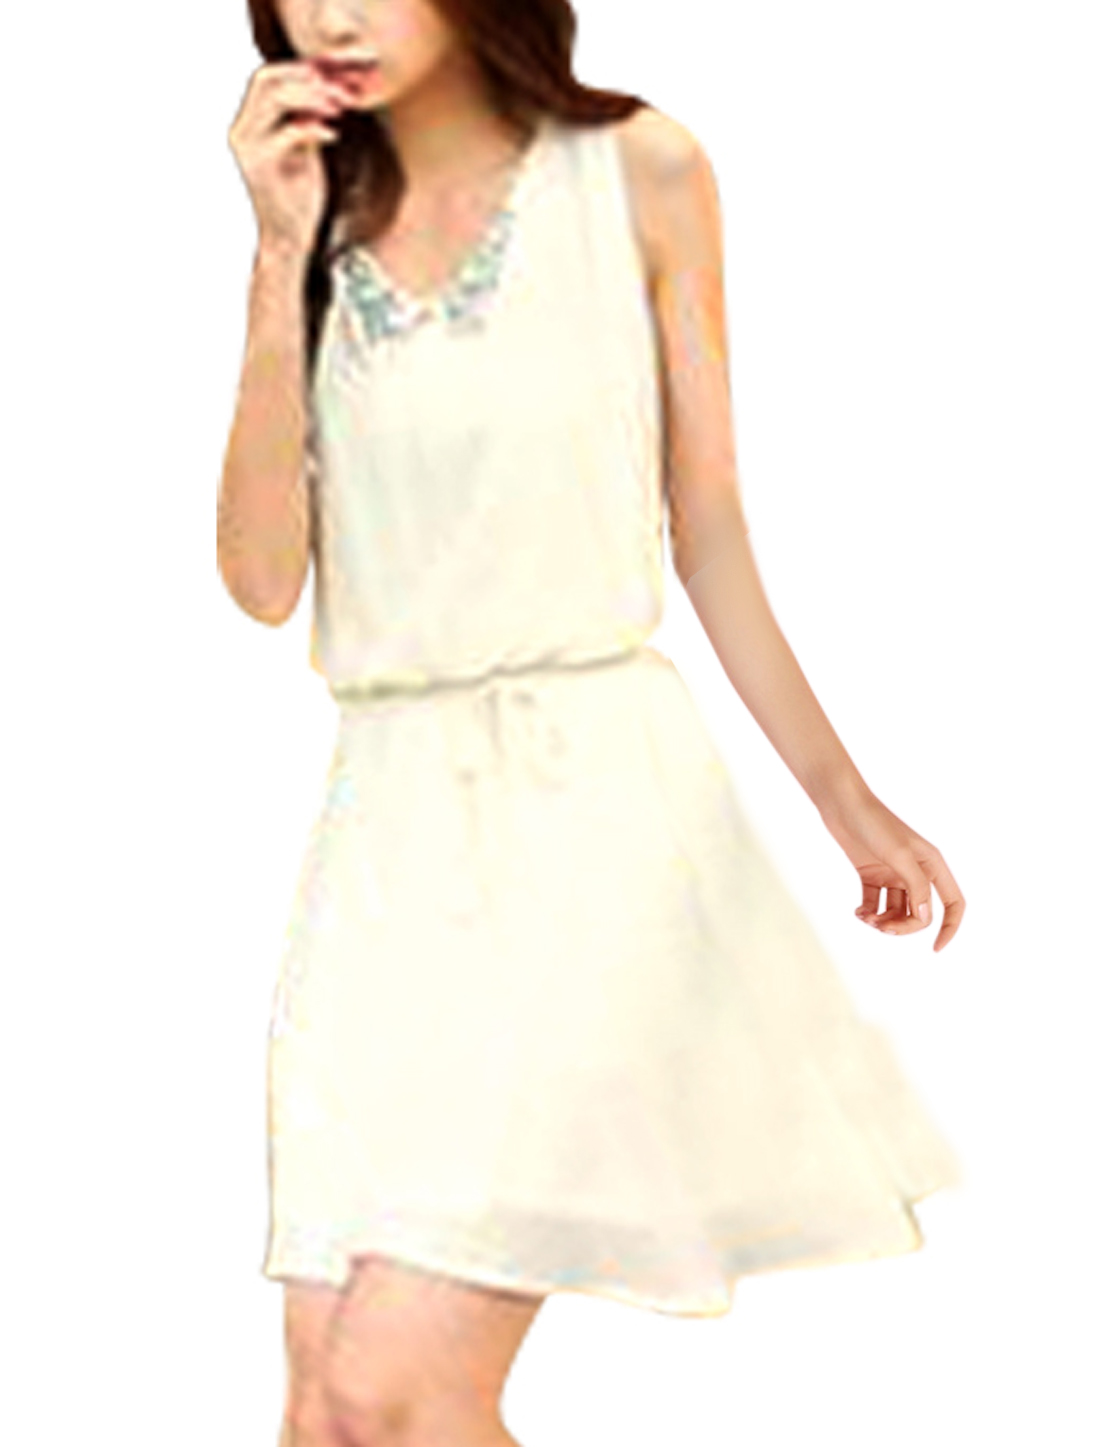 Women Peter Pan Collar Sleeveless Rhinestones Decor Beige Mini Dress XS